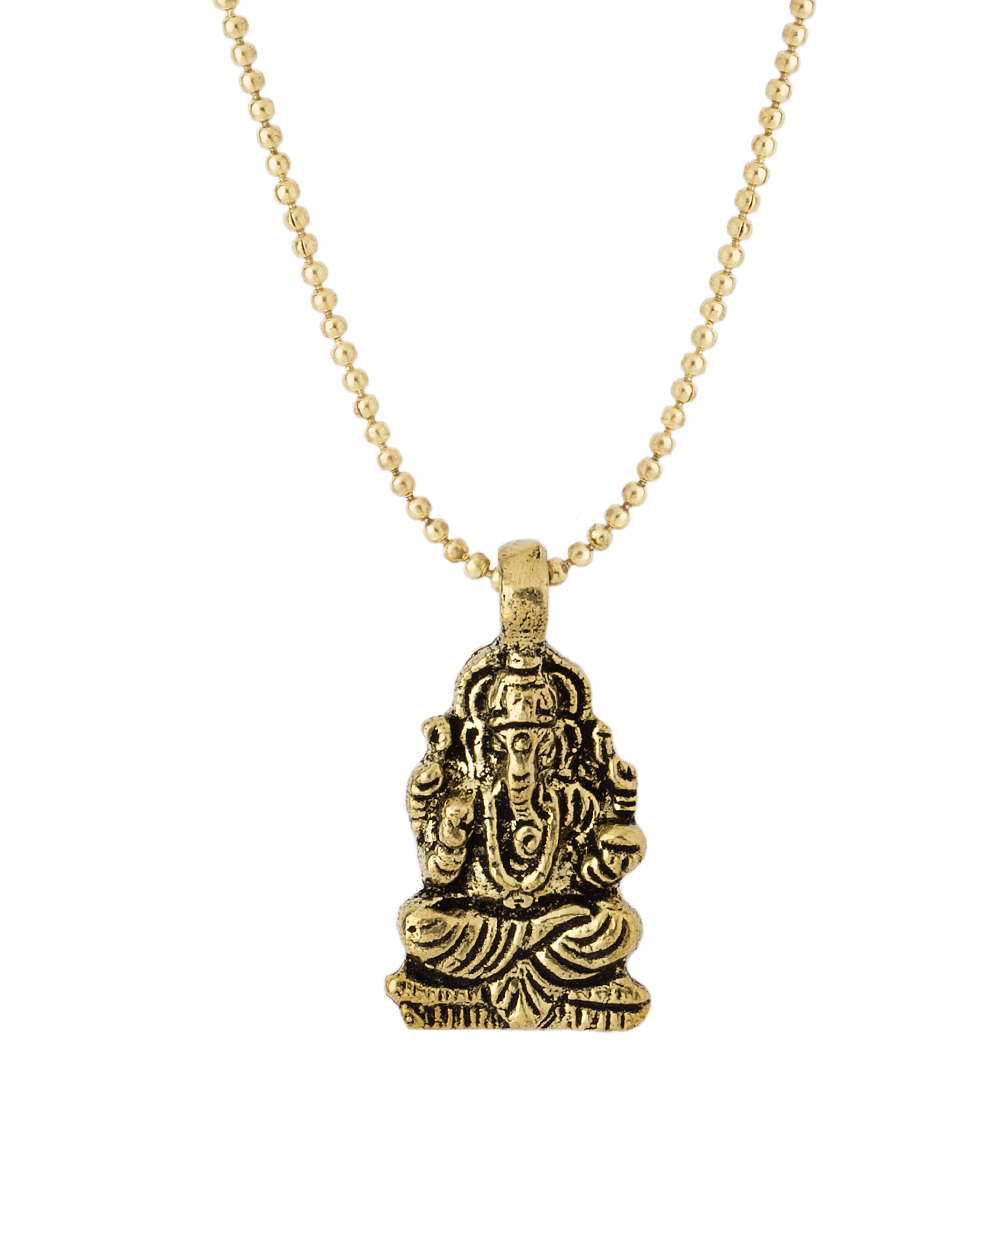 Buy ganesh pendant with chain for men in oxidised gold plating ganesh pendant with chain for men in oxidised gold plating aloadofball Gallery